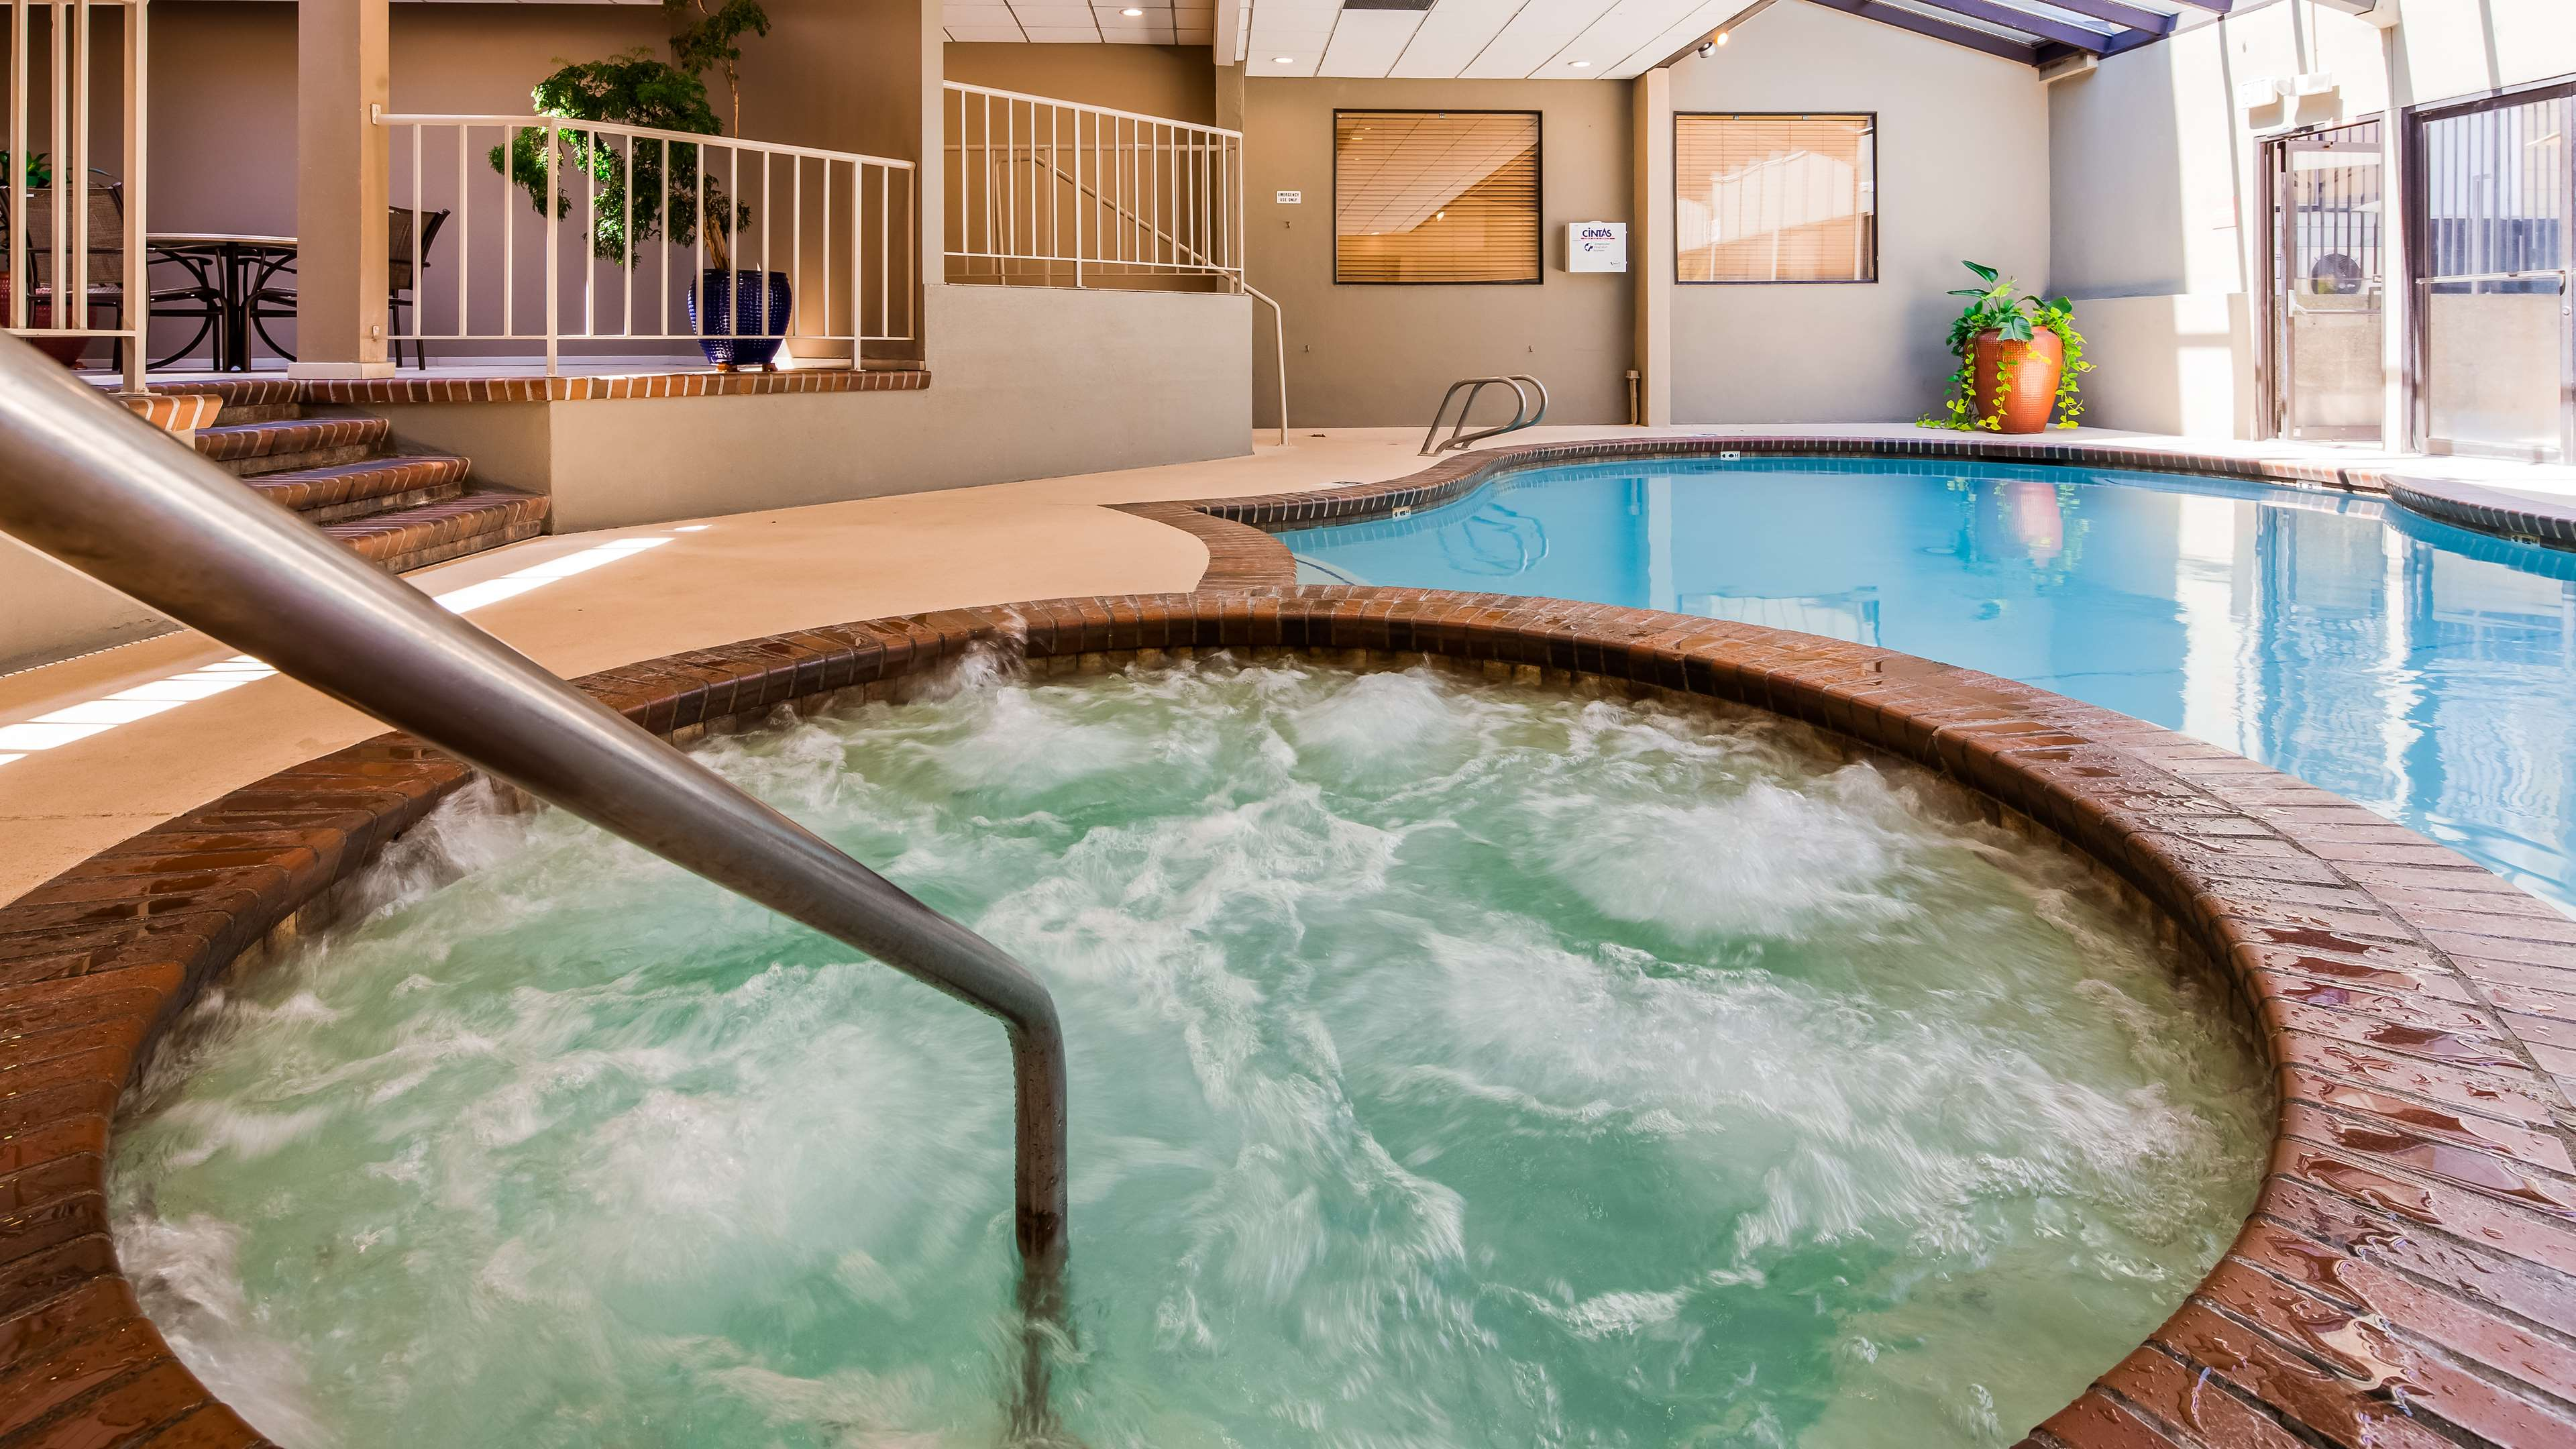 Jacuzzi and Pool Best Western Seattle Airport Hotel Seattle (206)878-3300